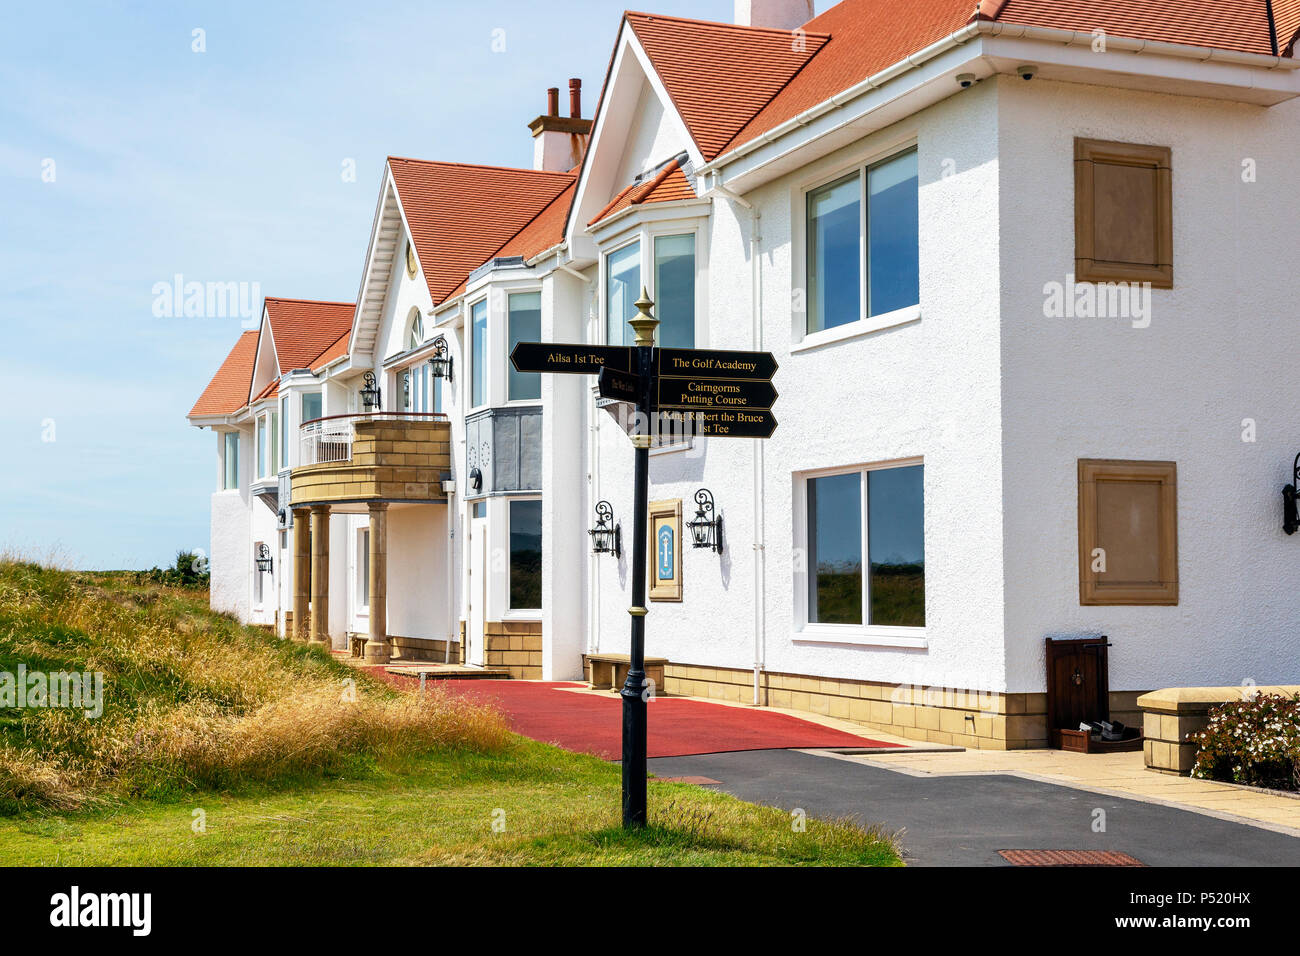 Golf clubhouse at the Trump Turnberry hotel and Golf complex, Turnberry, Ayrshire, Scotland - Stock Image